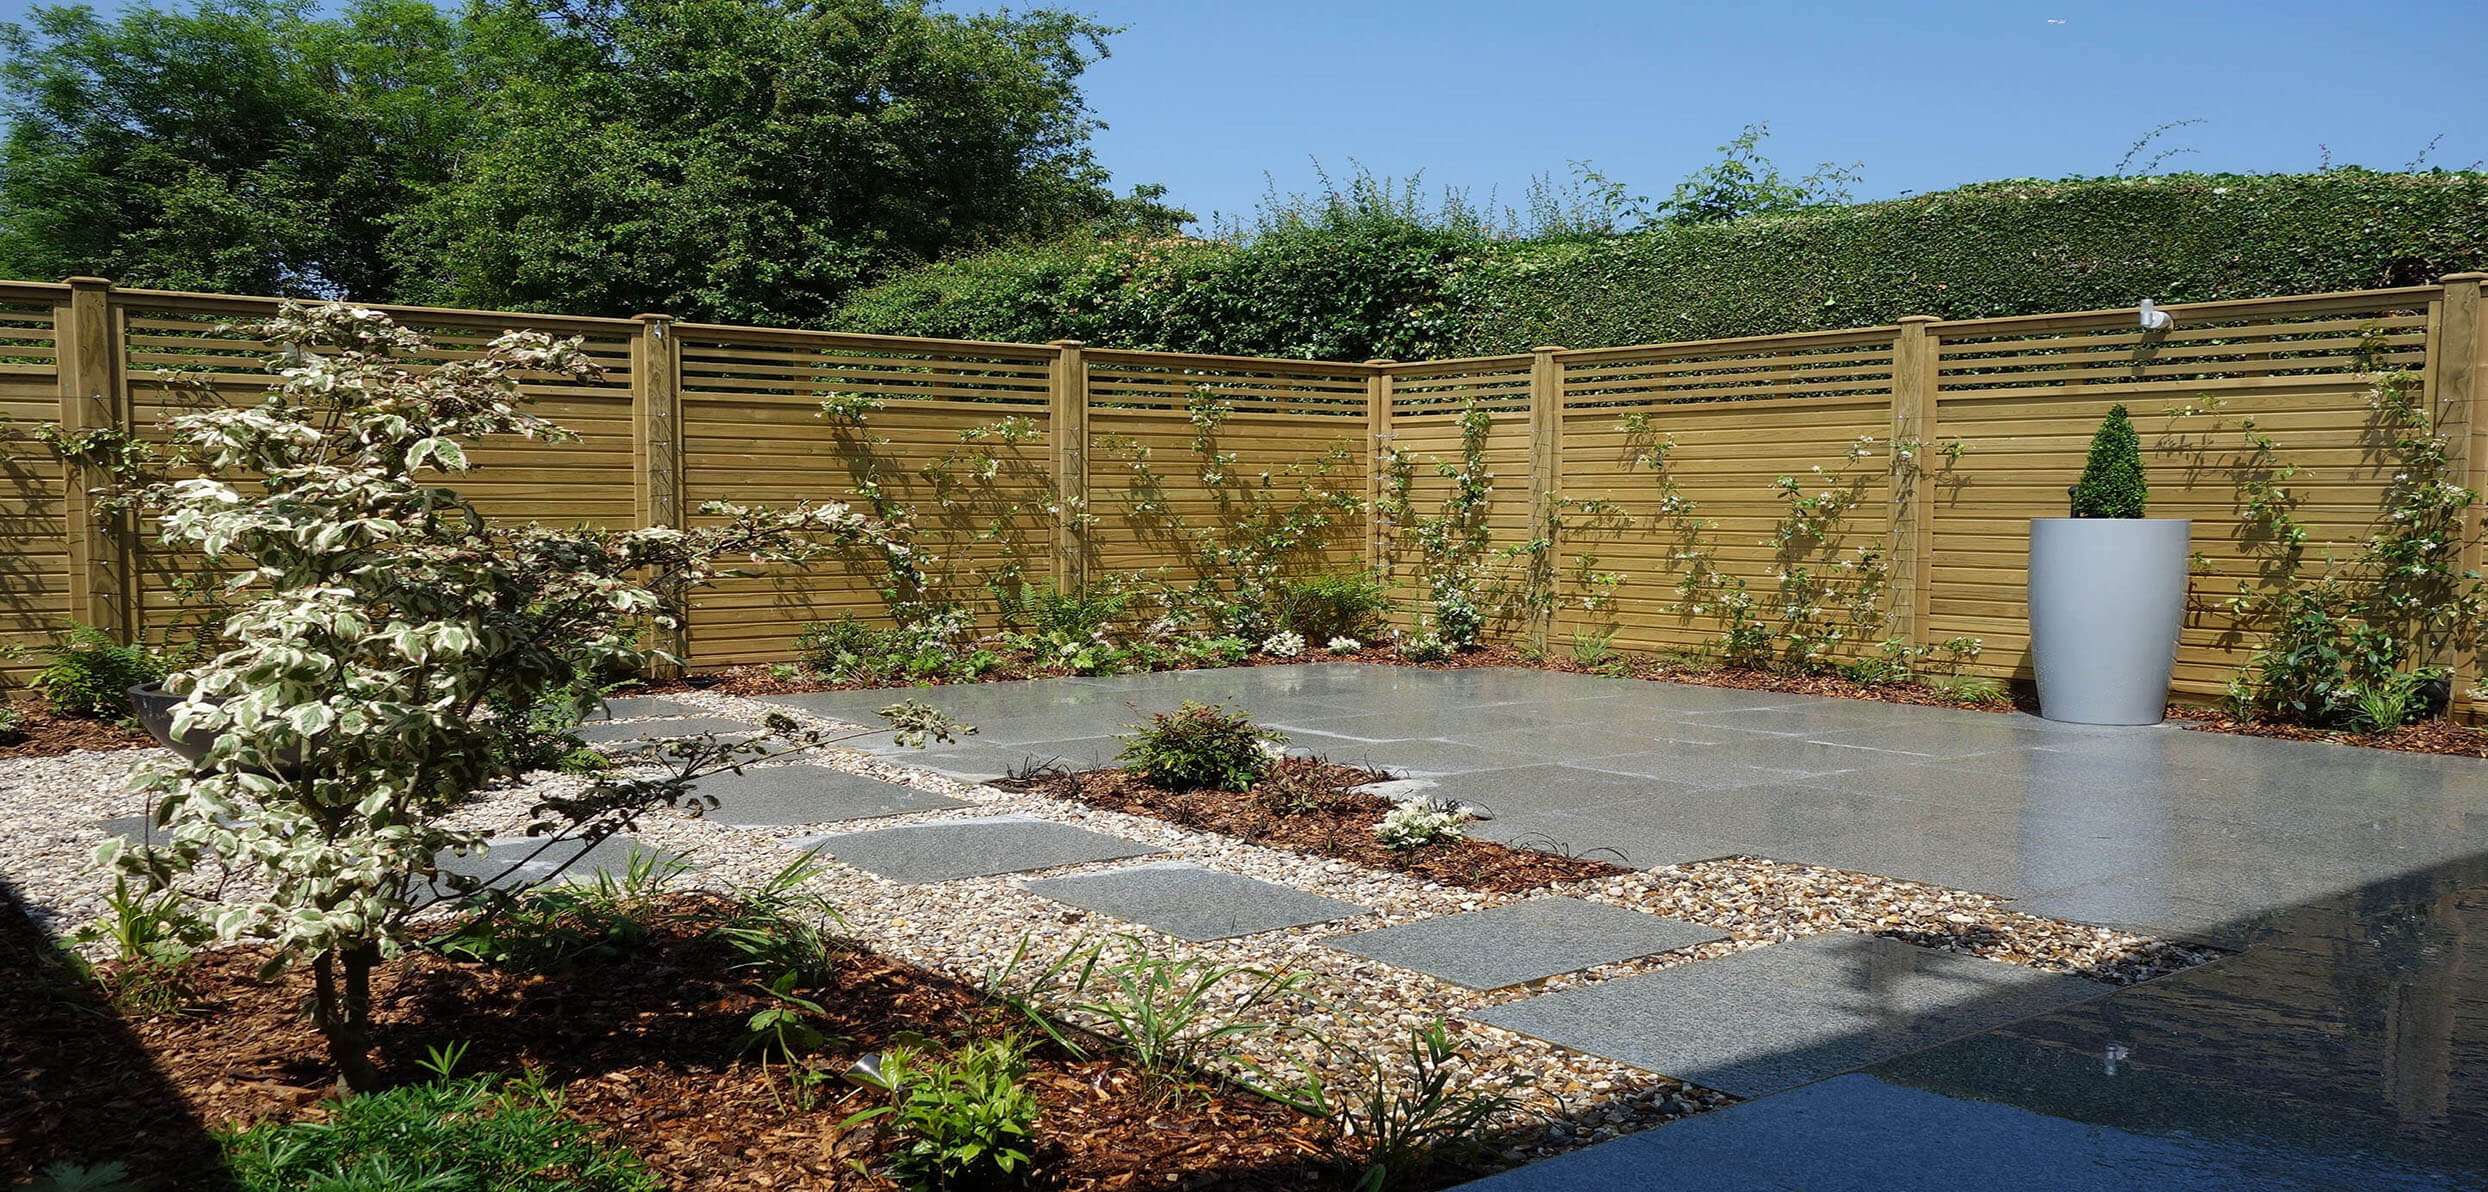 Garden Fencing in the sun